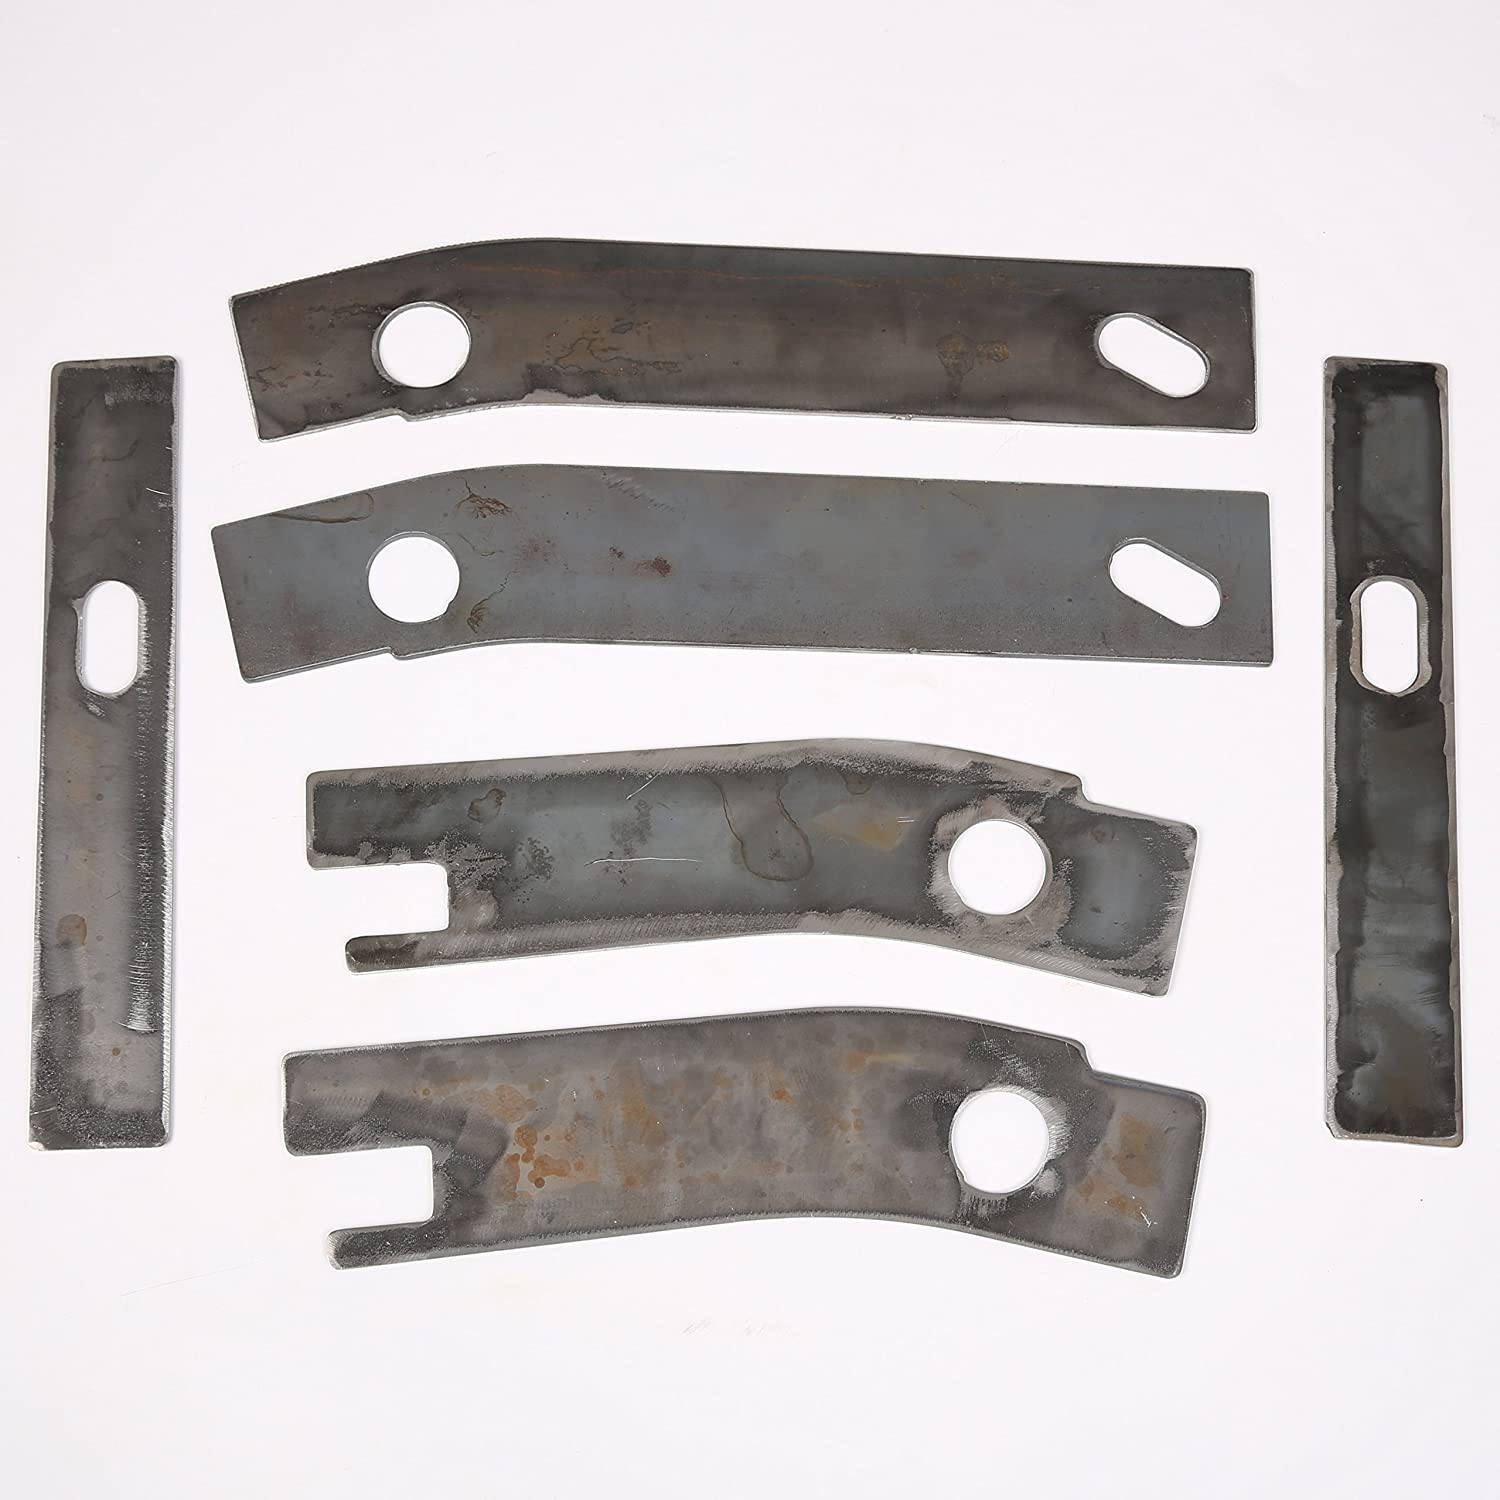 HEKA 8P Frame Repair Rusted Shackle Weld Plate fit for 1986-1995 Jeep Wrangler YJ Rear